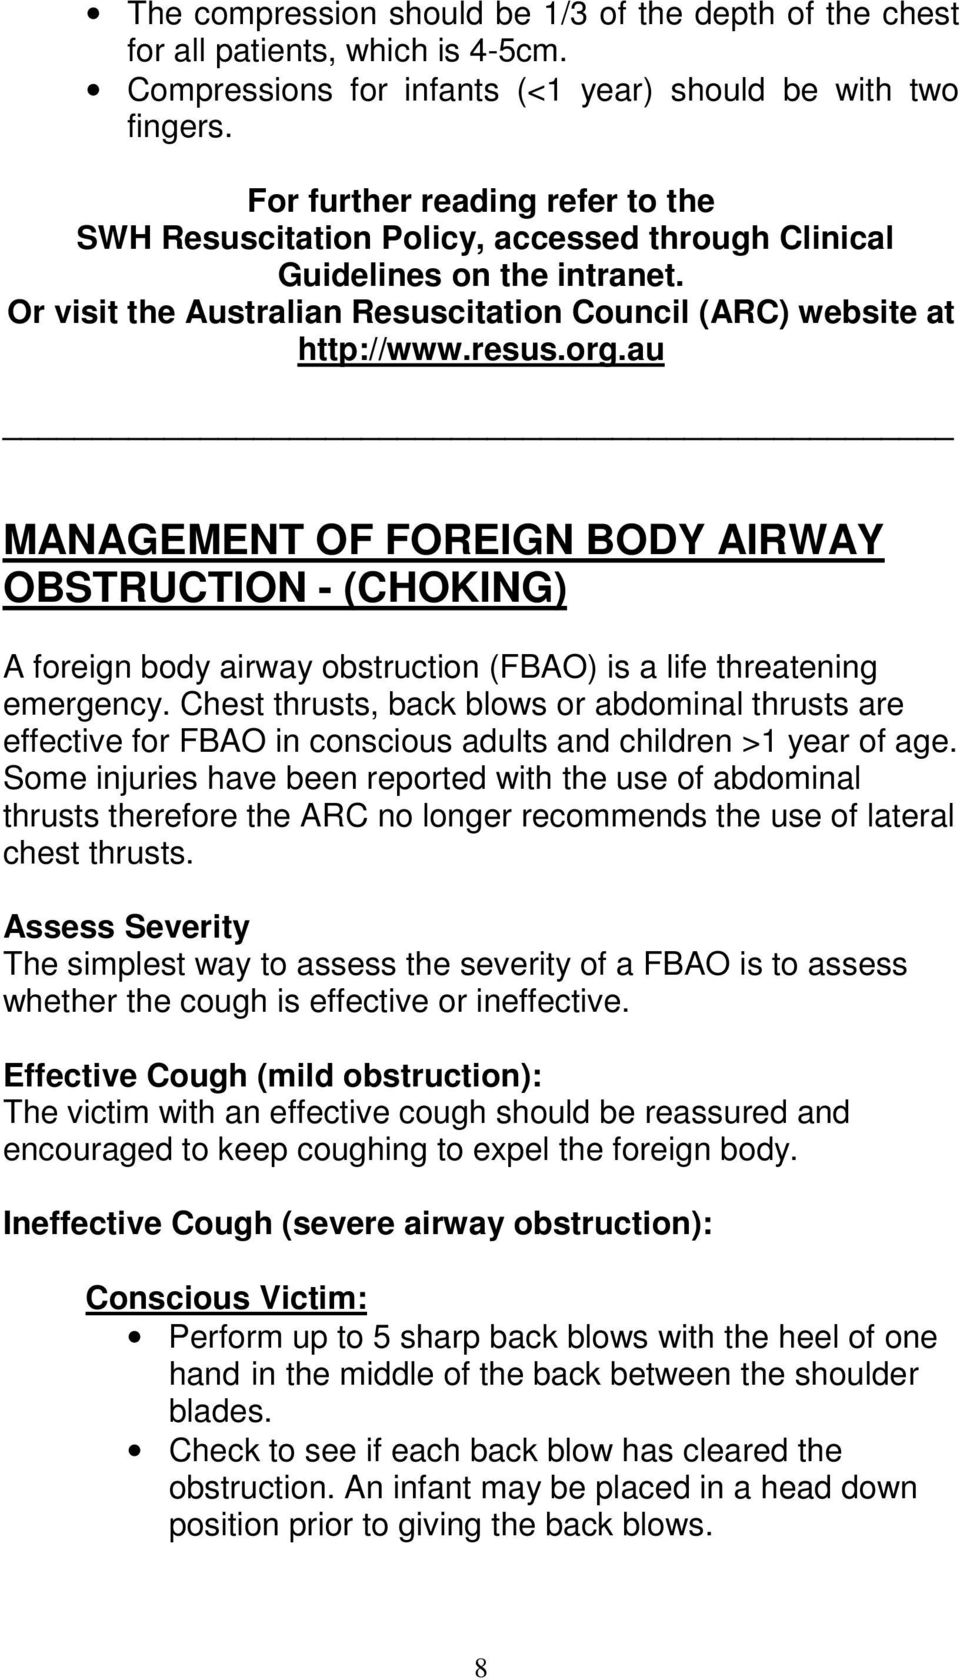 au MANAGEMENT OF FOREIGN BODY AIRWAY OBSTRUCTION - (CHOKING) A foreign body airway obstruction (FBAO) is a life threatening emergency.